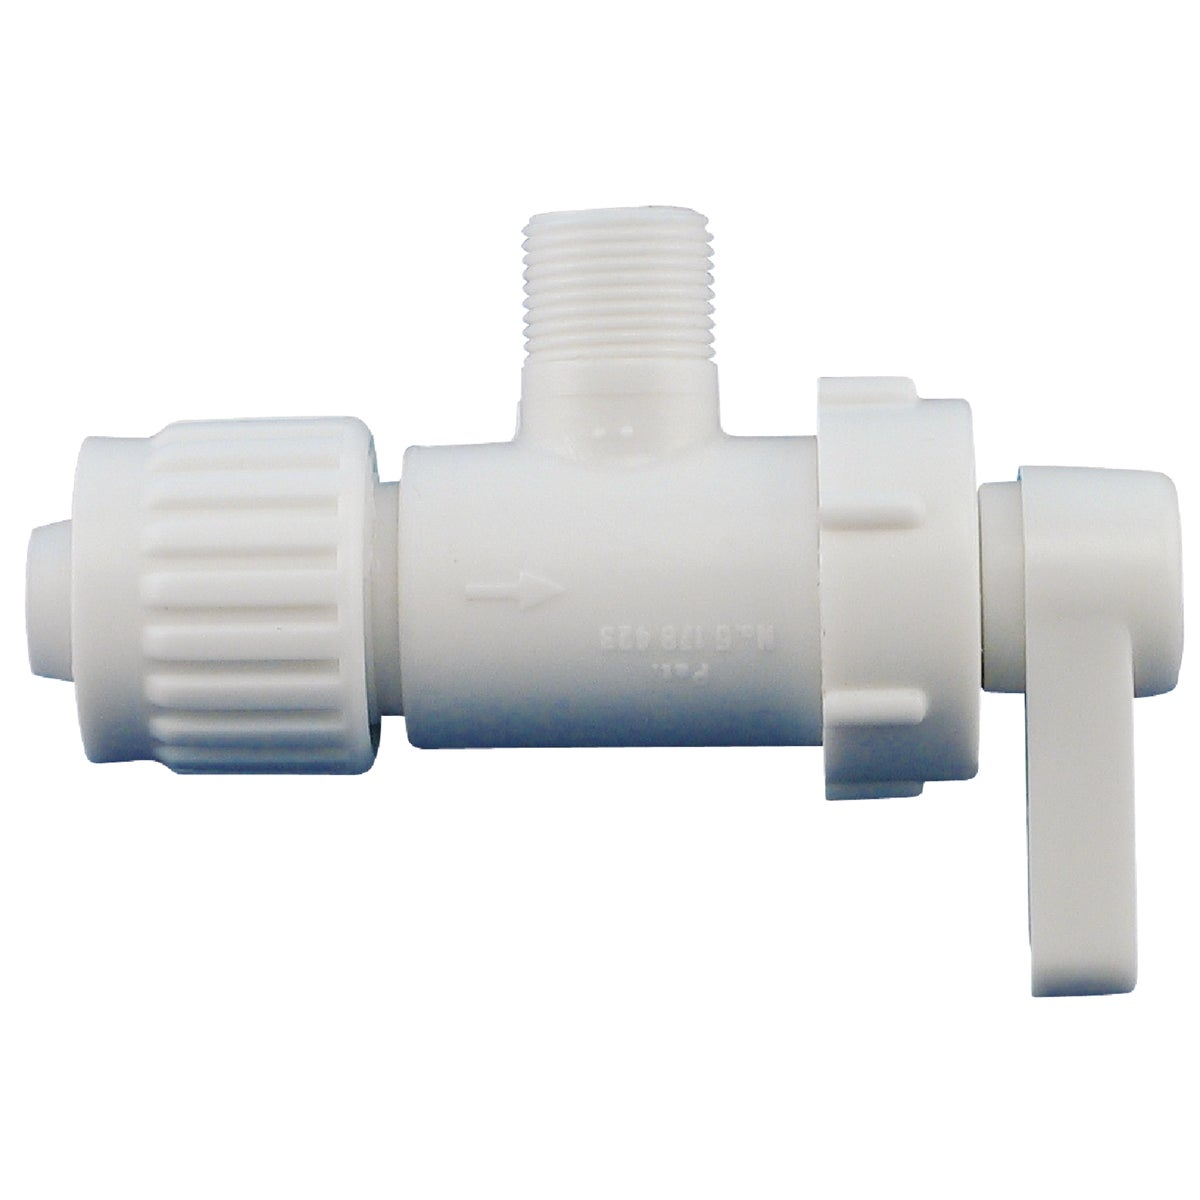 1/2X3/8 ANGLE VALVE - 16893 by Flair It West